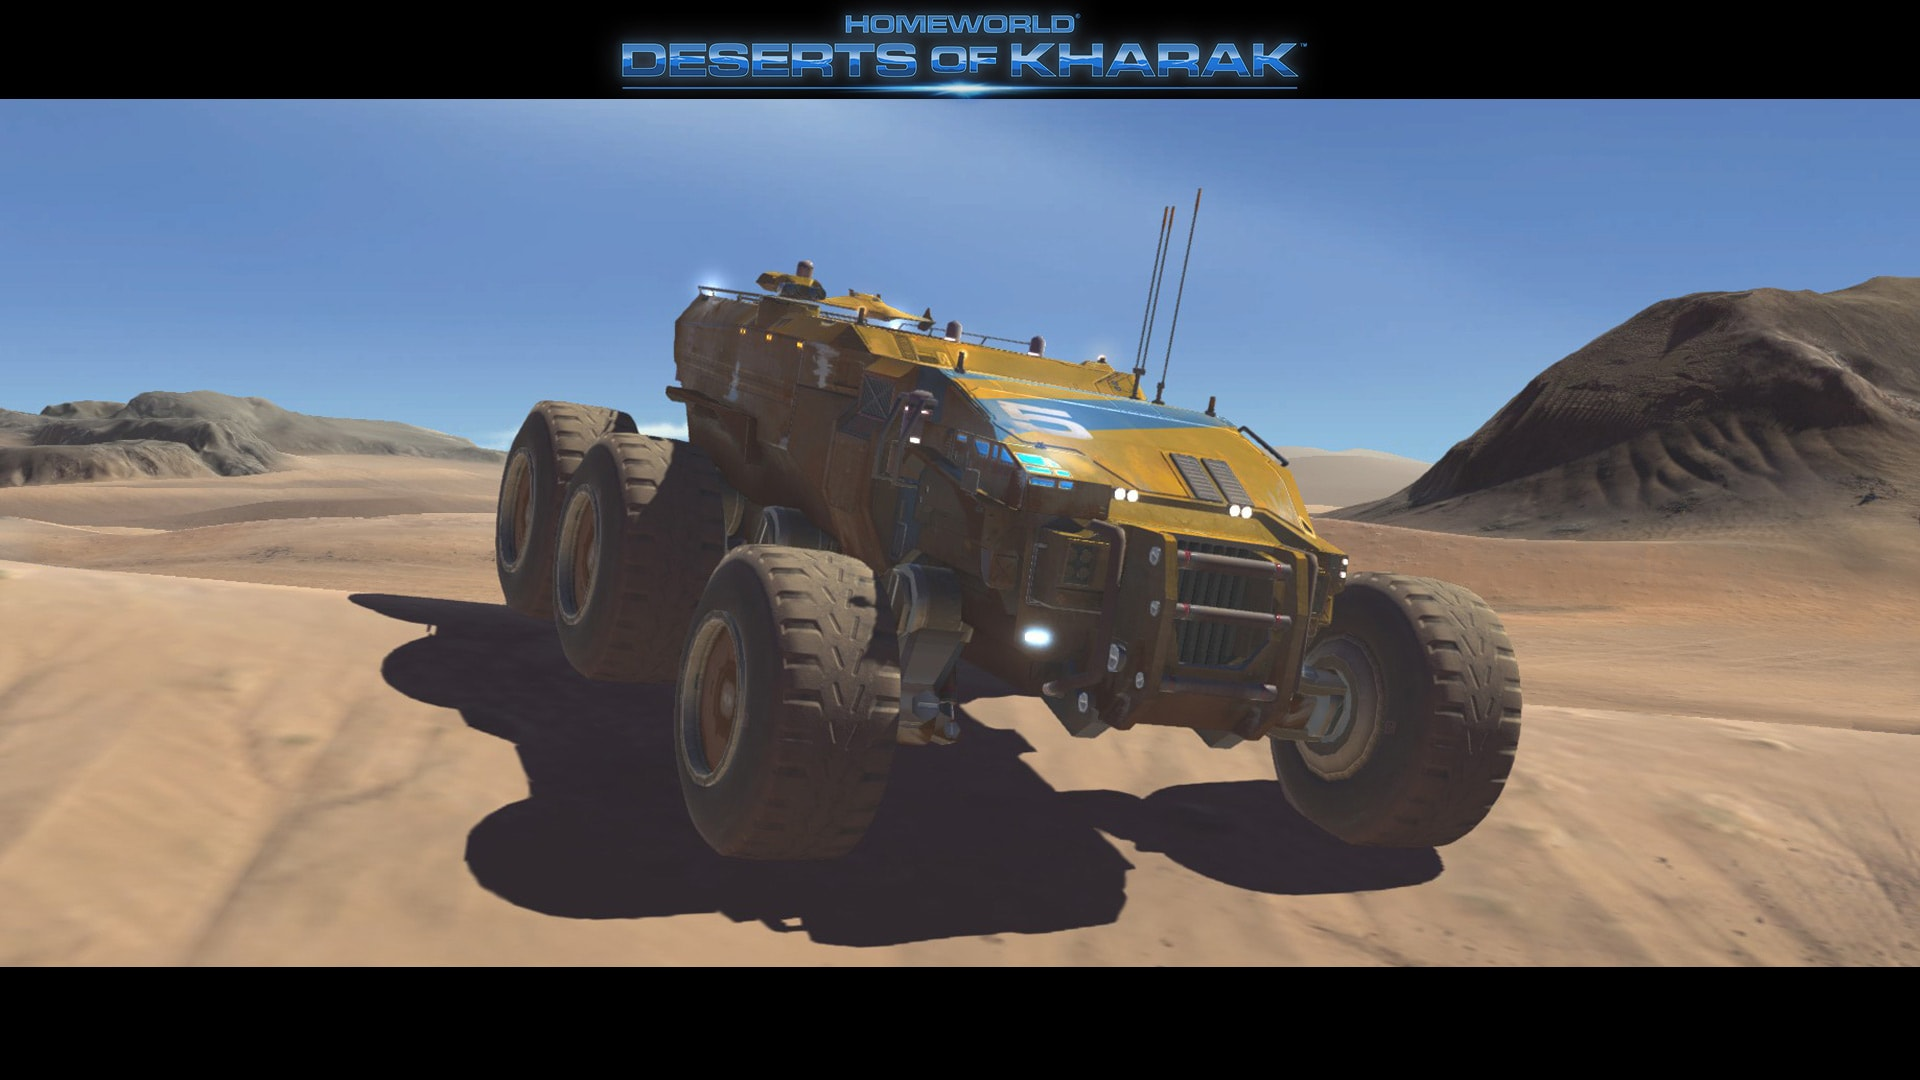 Homeworld: Deserts of Kharak HD pics